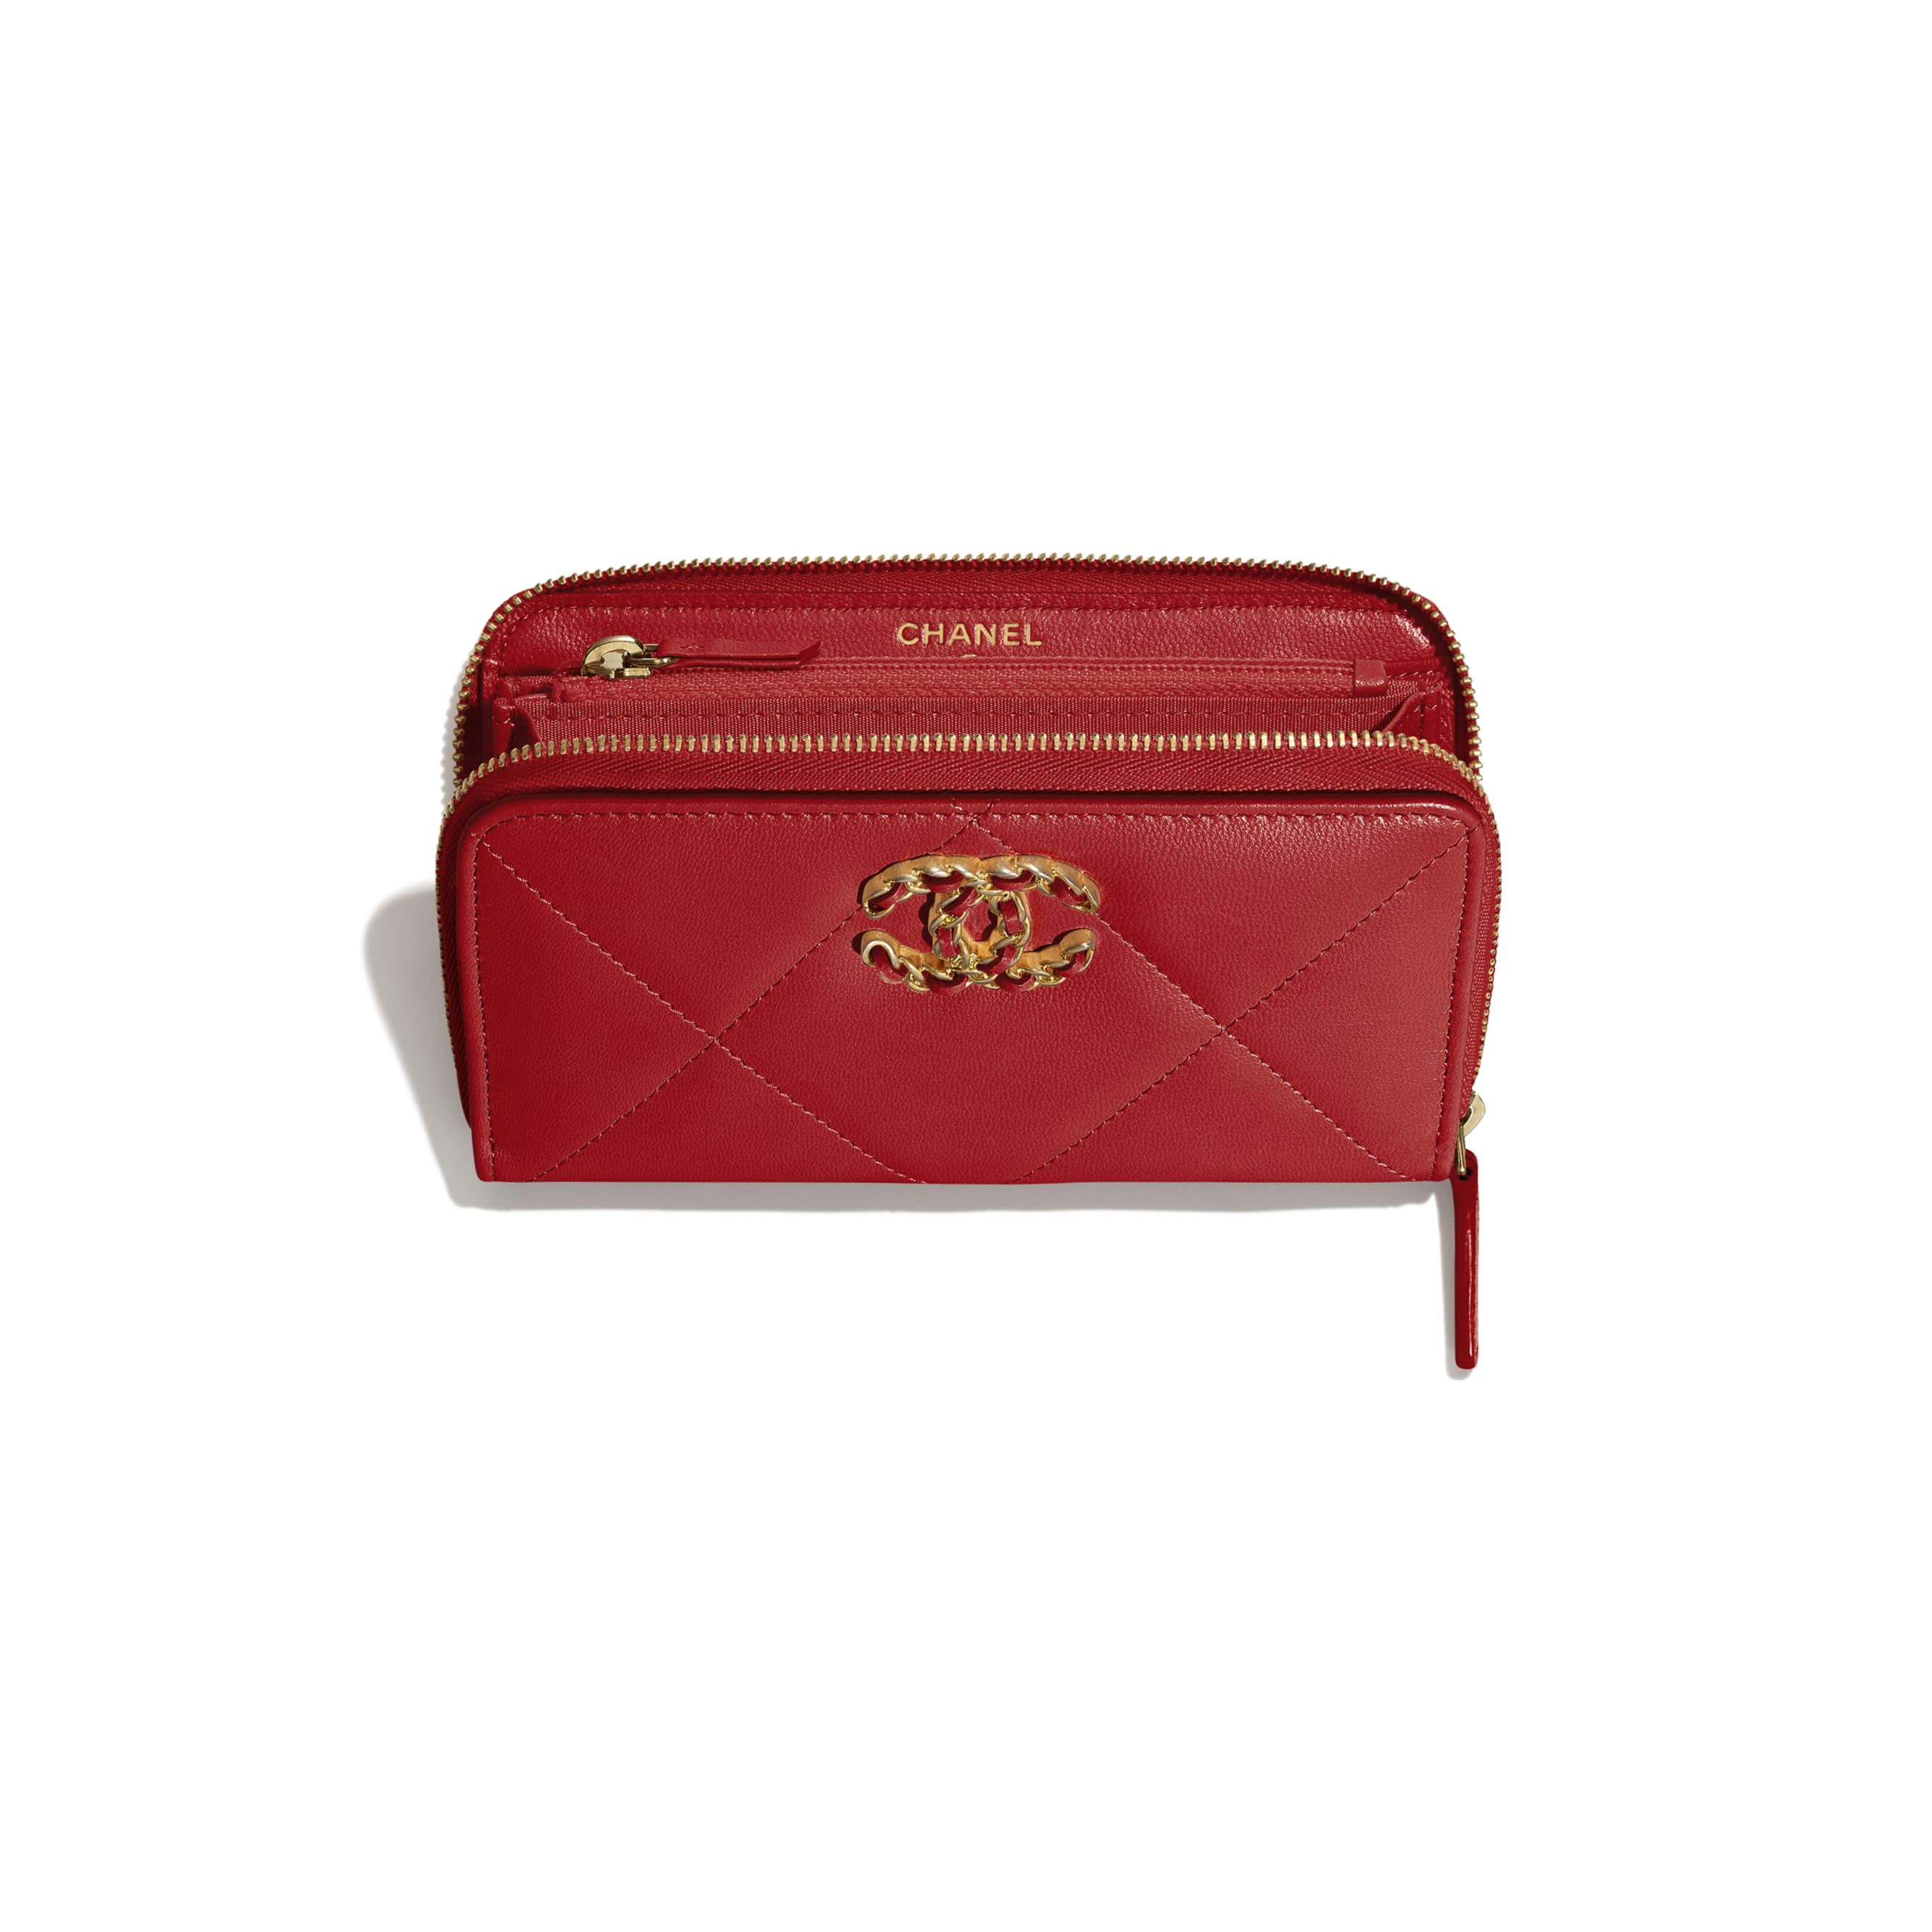 CHANEL 19 Zipped Wallet - Red - Shiny Goatskin, Gold-Tone, Silver-Tone & Ruthenium-Finish Metal - Other view - see standard sized version